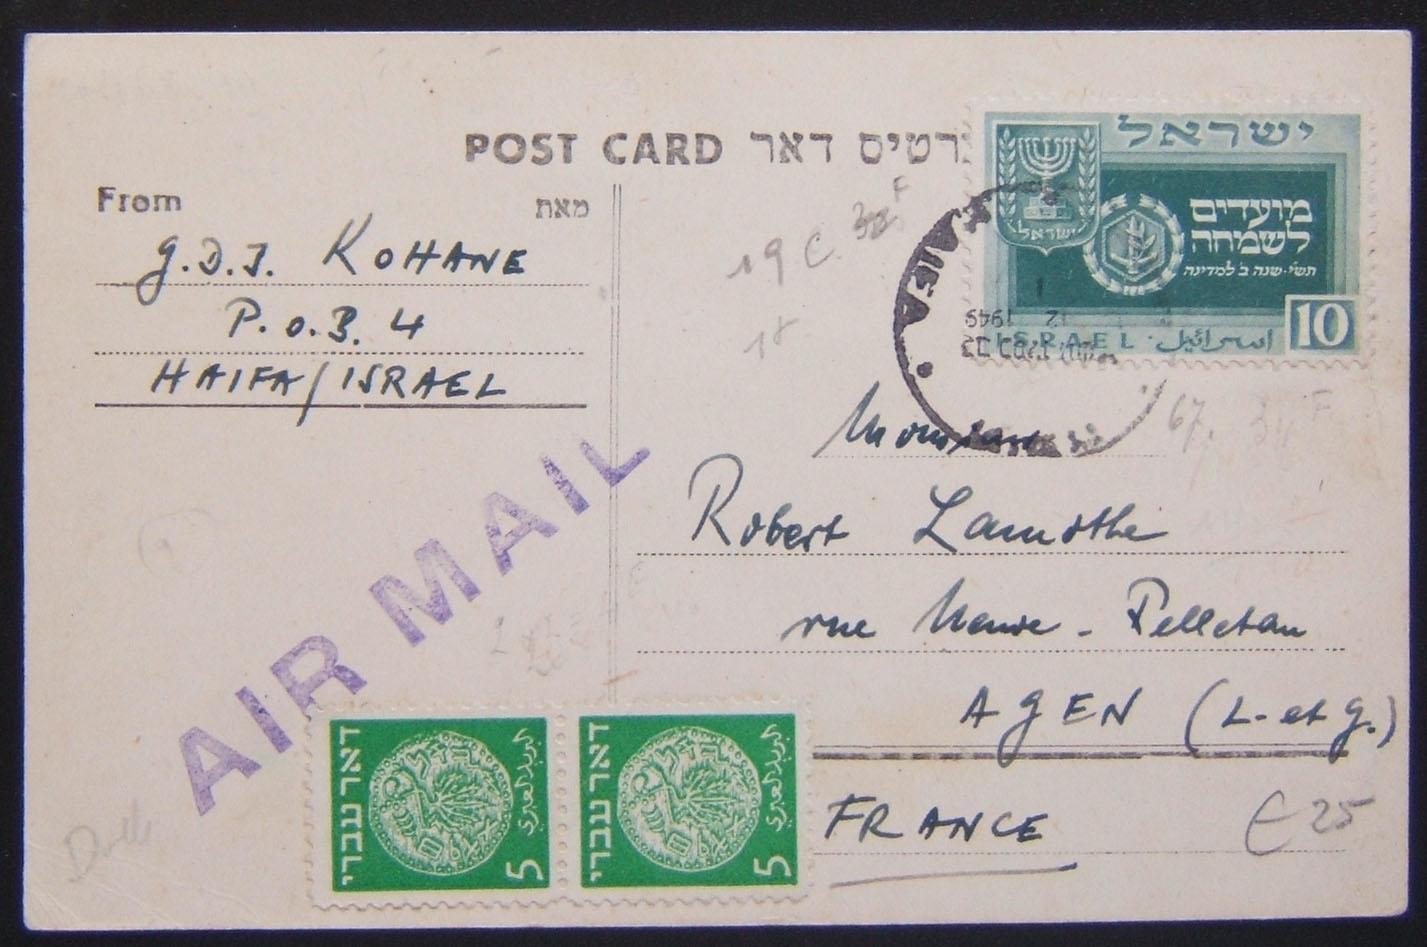 1949 mixed franking airmail: 13-12-1949 pc ex HAIFA to FRANCE franked 20pr per FA-2a period rate to Europe using mix of vert. pair 5pr DI Ba2 + 1949 IDF Insignia 10pr Ba19 tied by